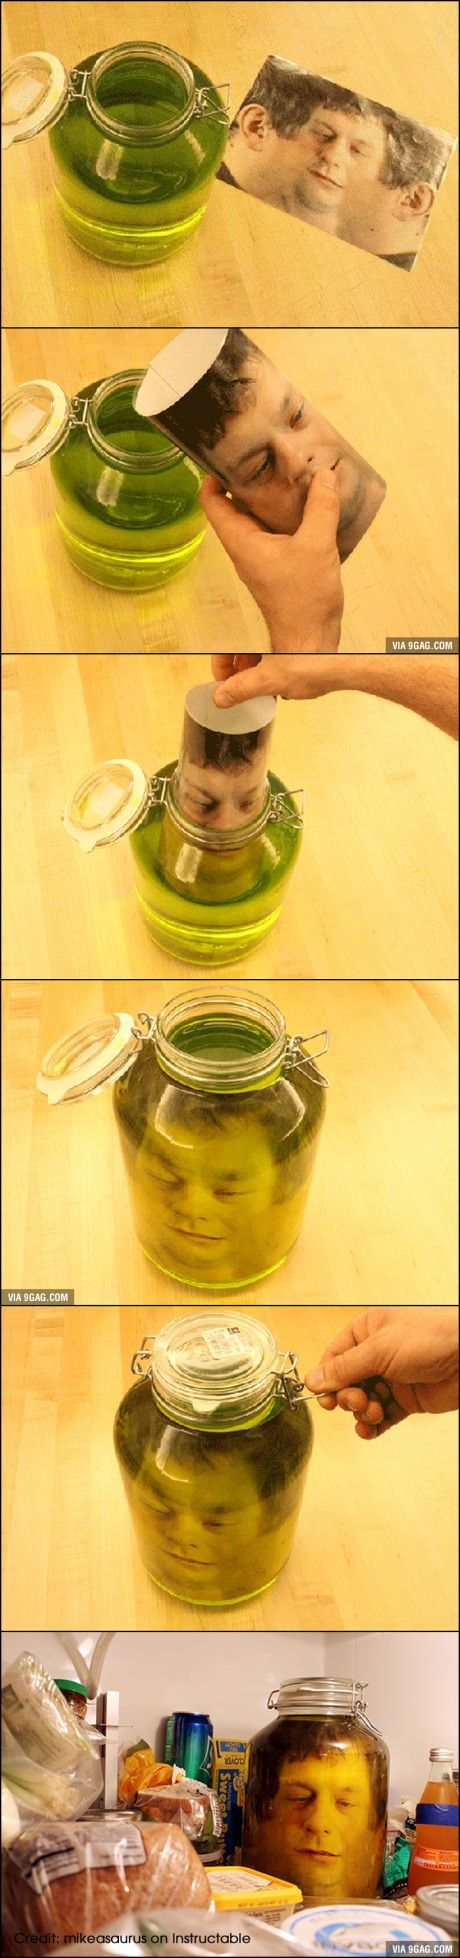 Head in a jar, scary! Great for Halloween. This has a great tutorial if you want to DIY and also an alternative to just download theirs: